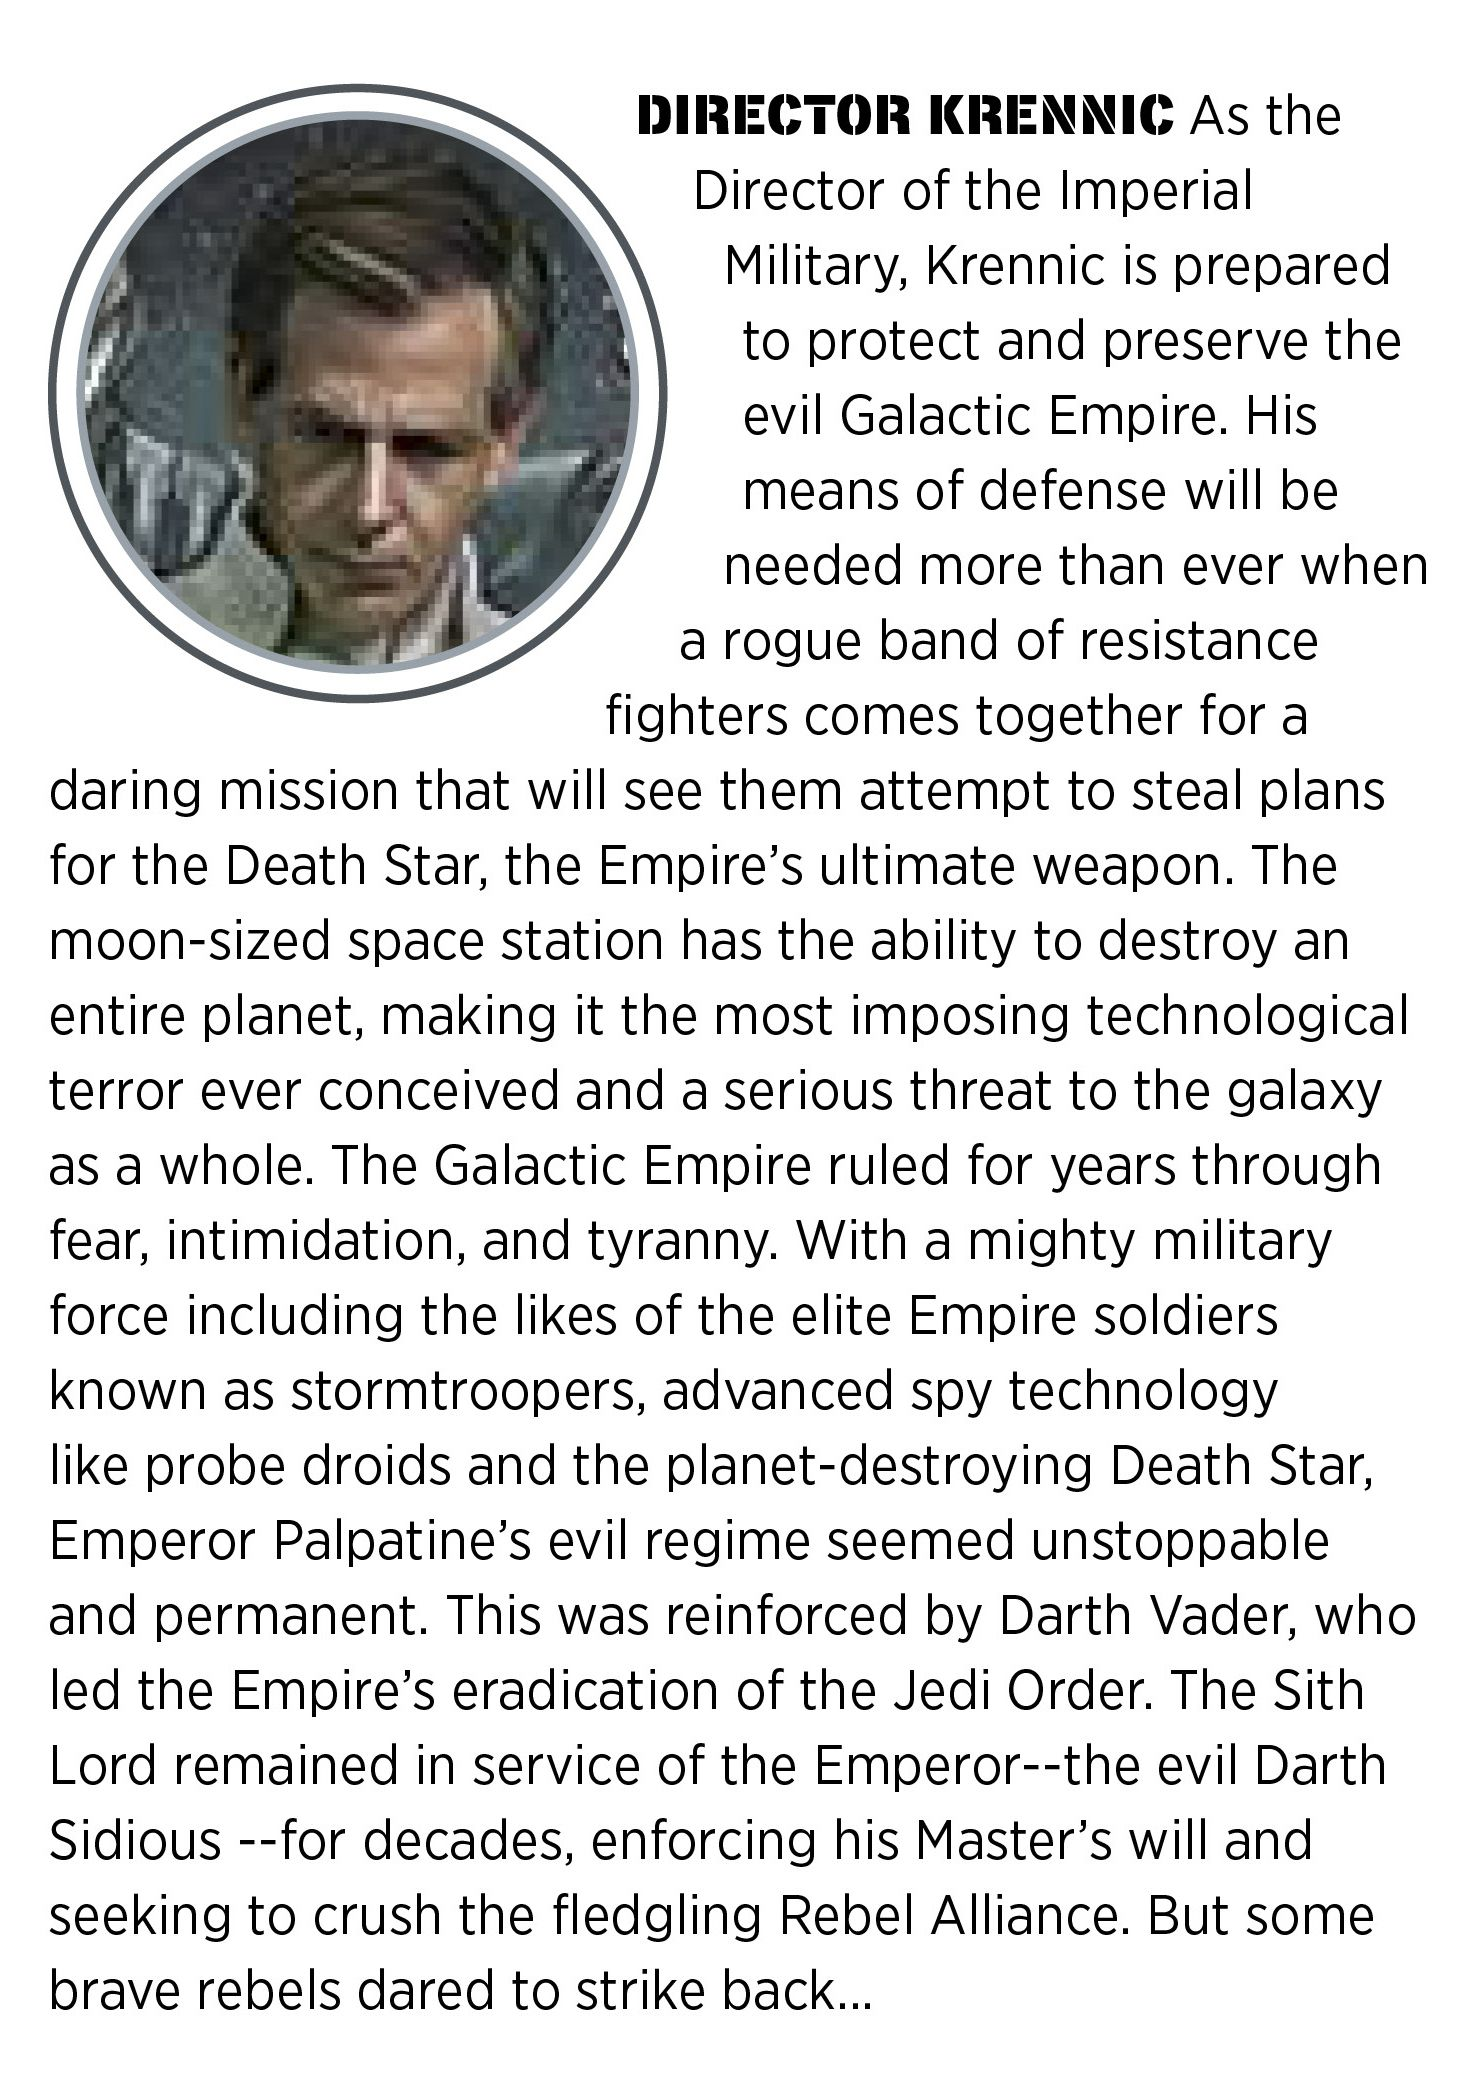 Star Wars Rogue One - Director Krennic (Ben Mendelsohn) from the Visual Dictionary